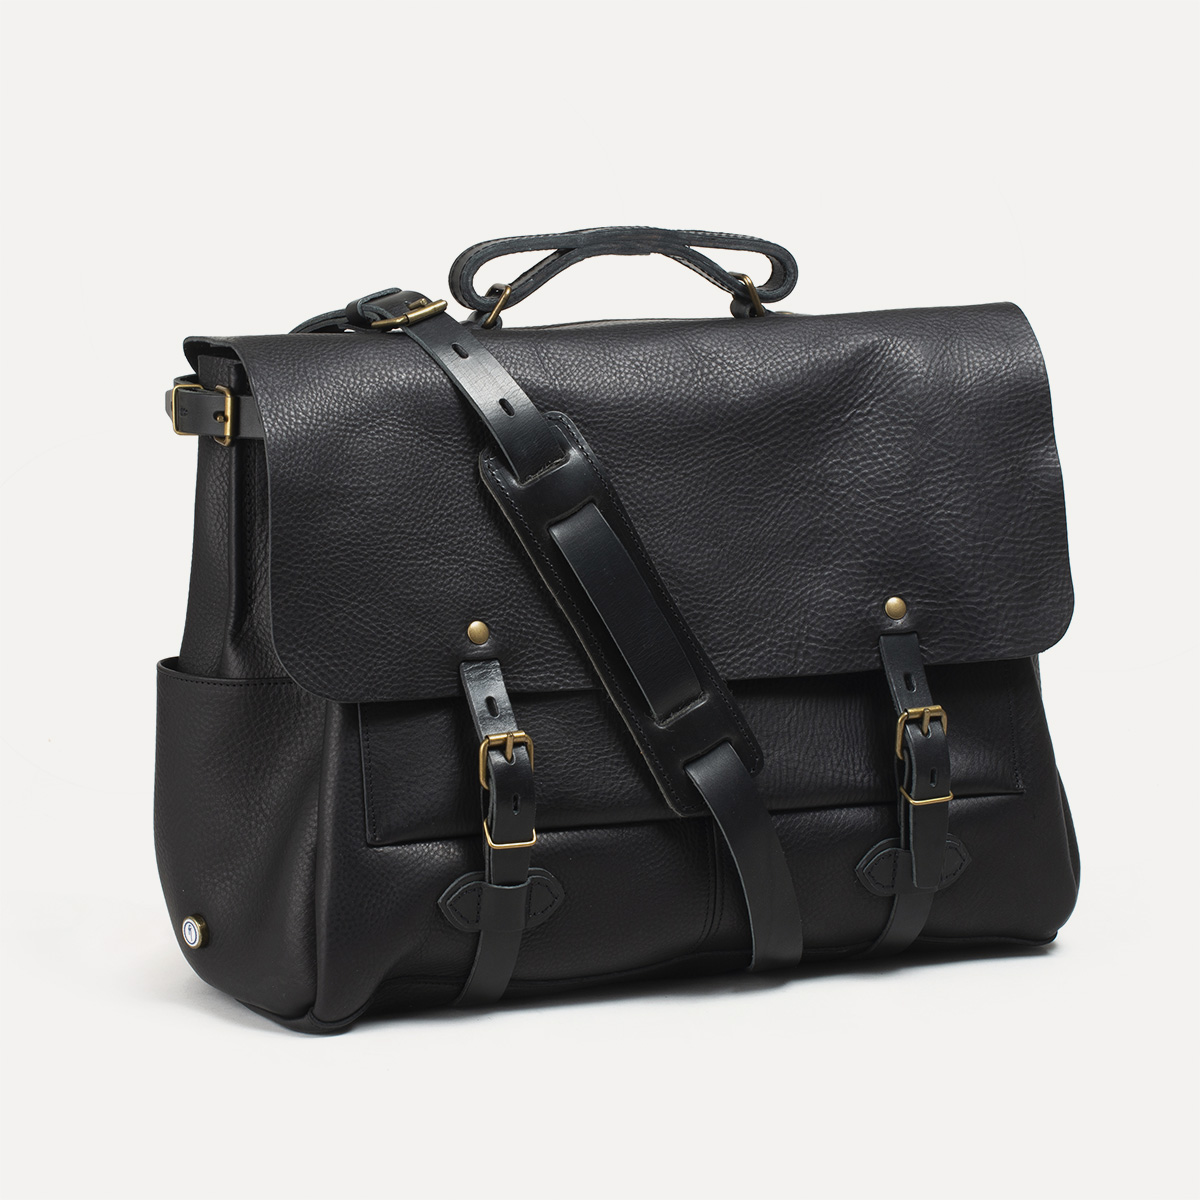 8f972dbb7c Sac Postier Irving 48H I Sac cartable cuir Homme Made in France ...